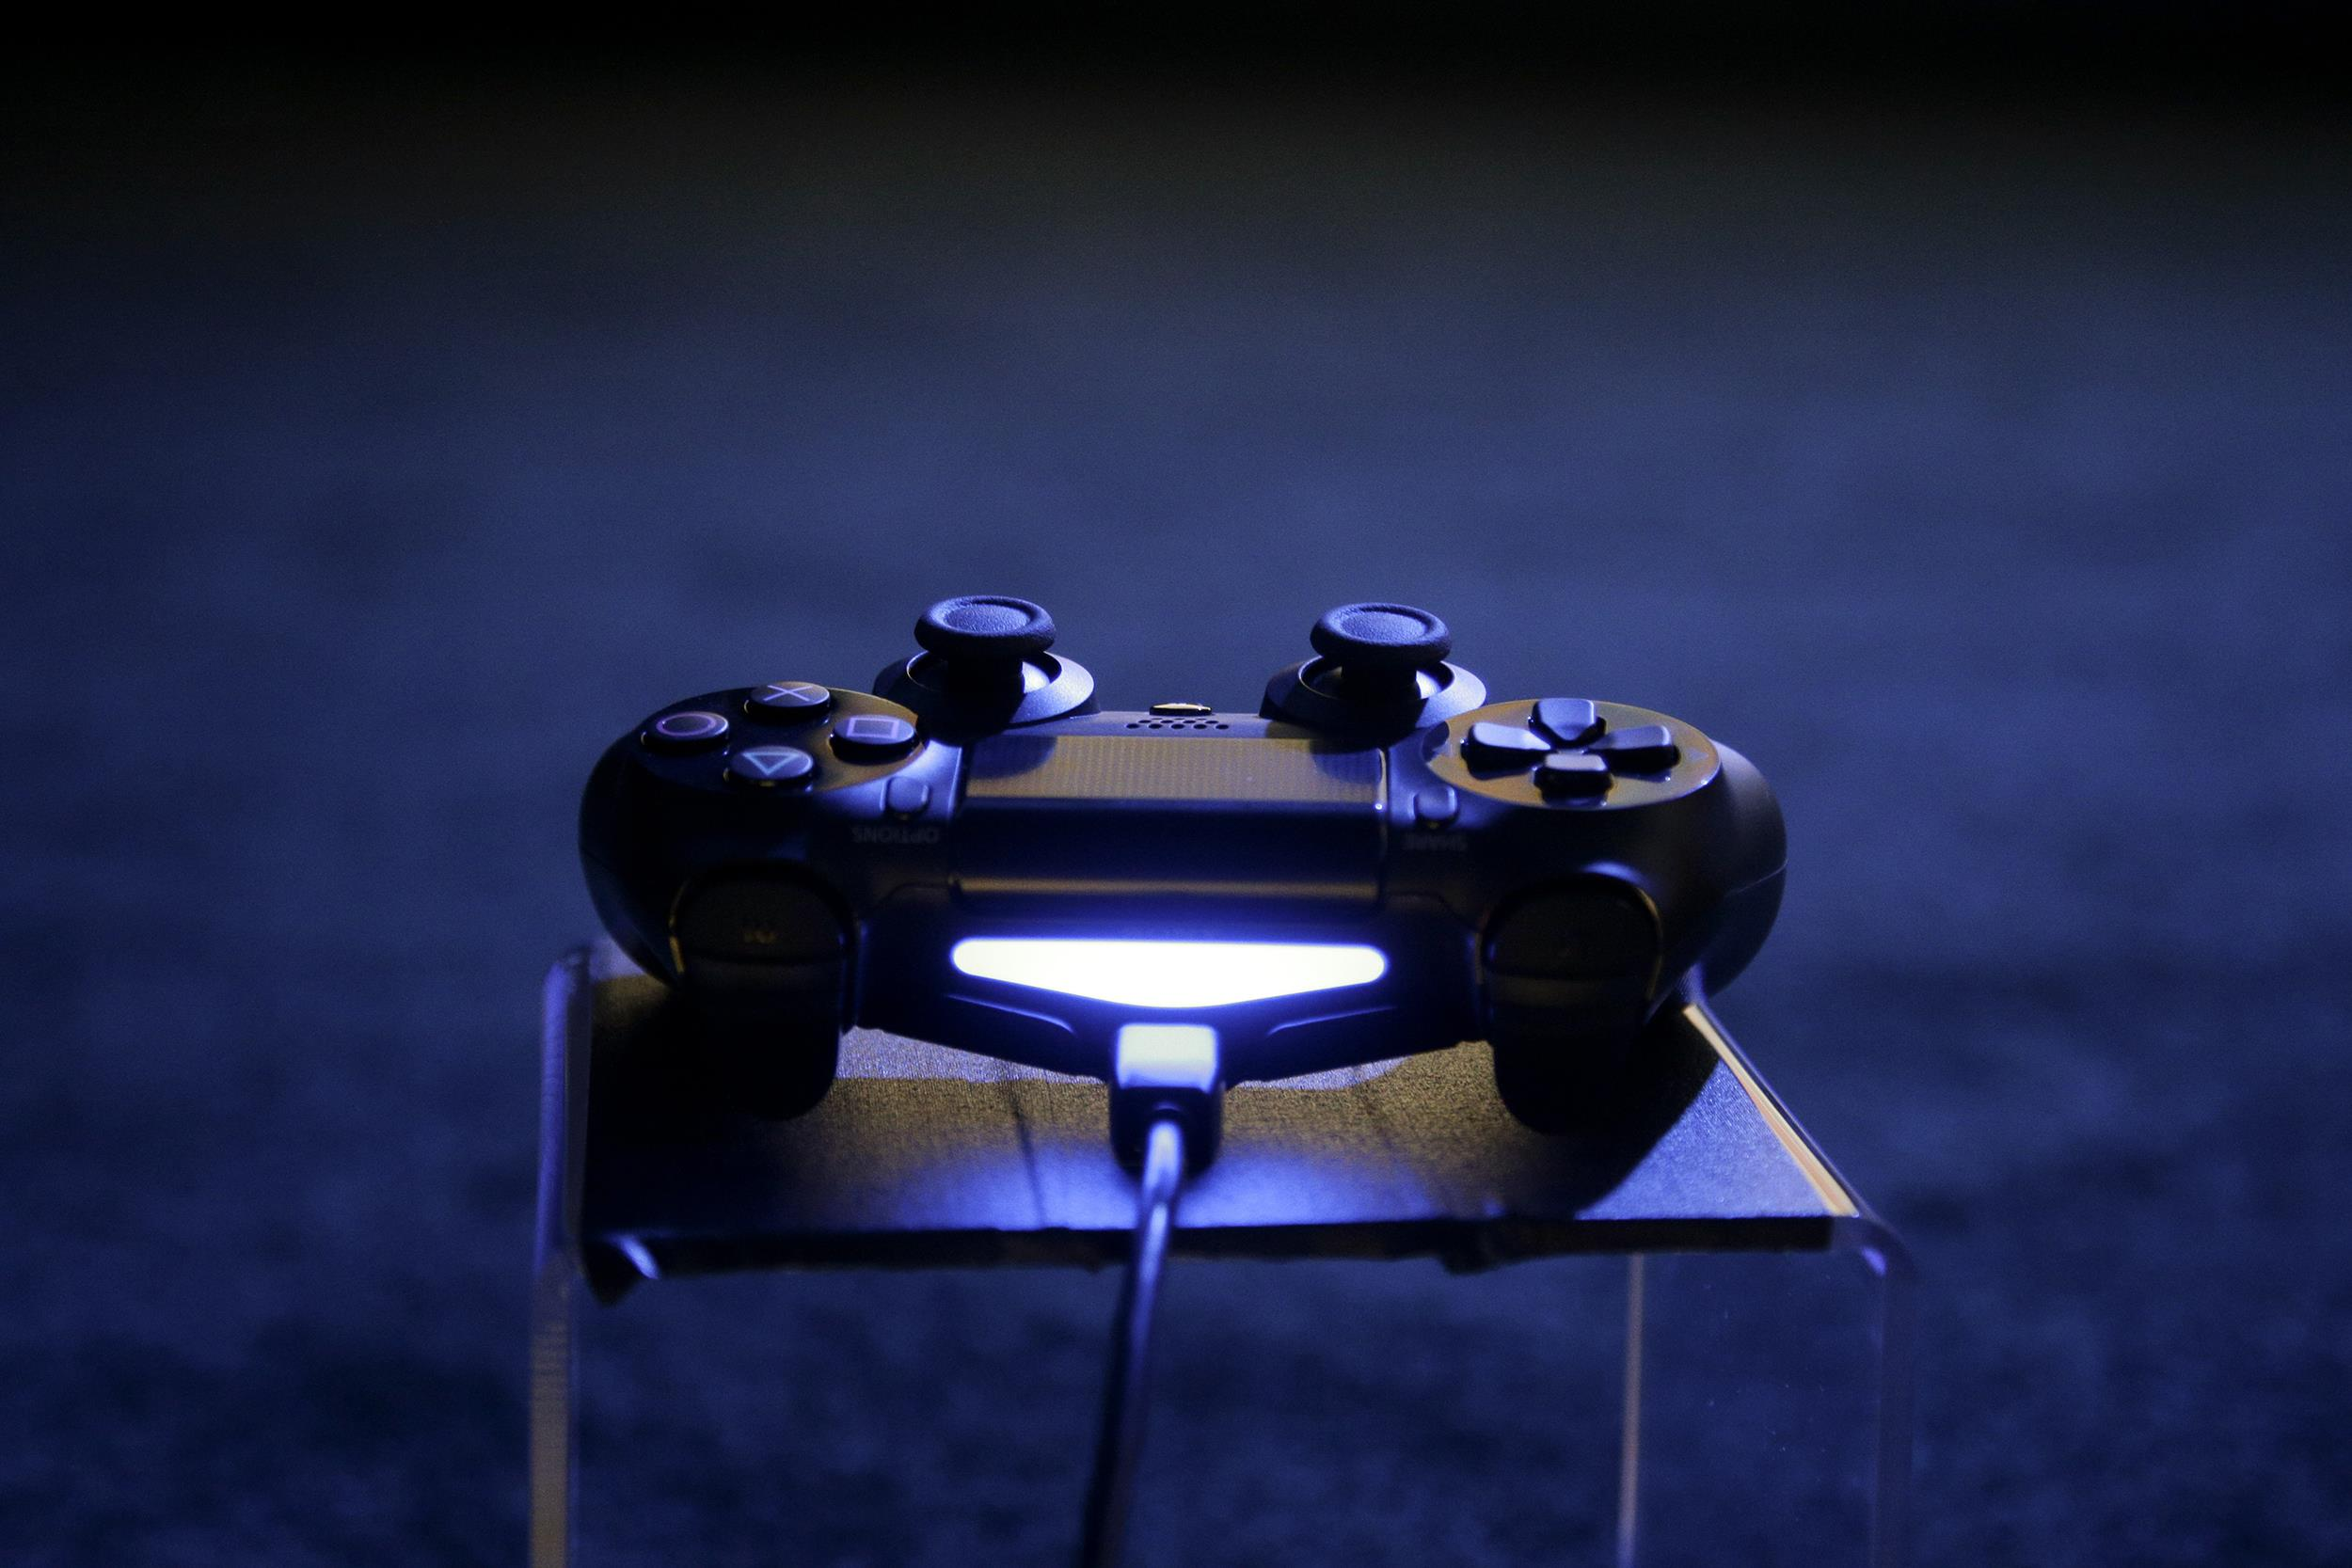 PlayStation Restored After Lizard Squad Hack Attack: Sony